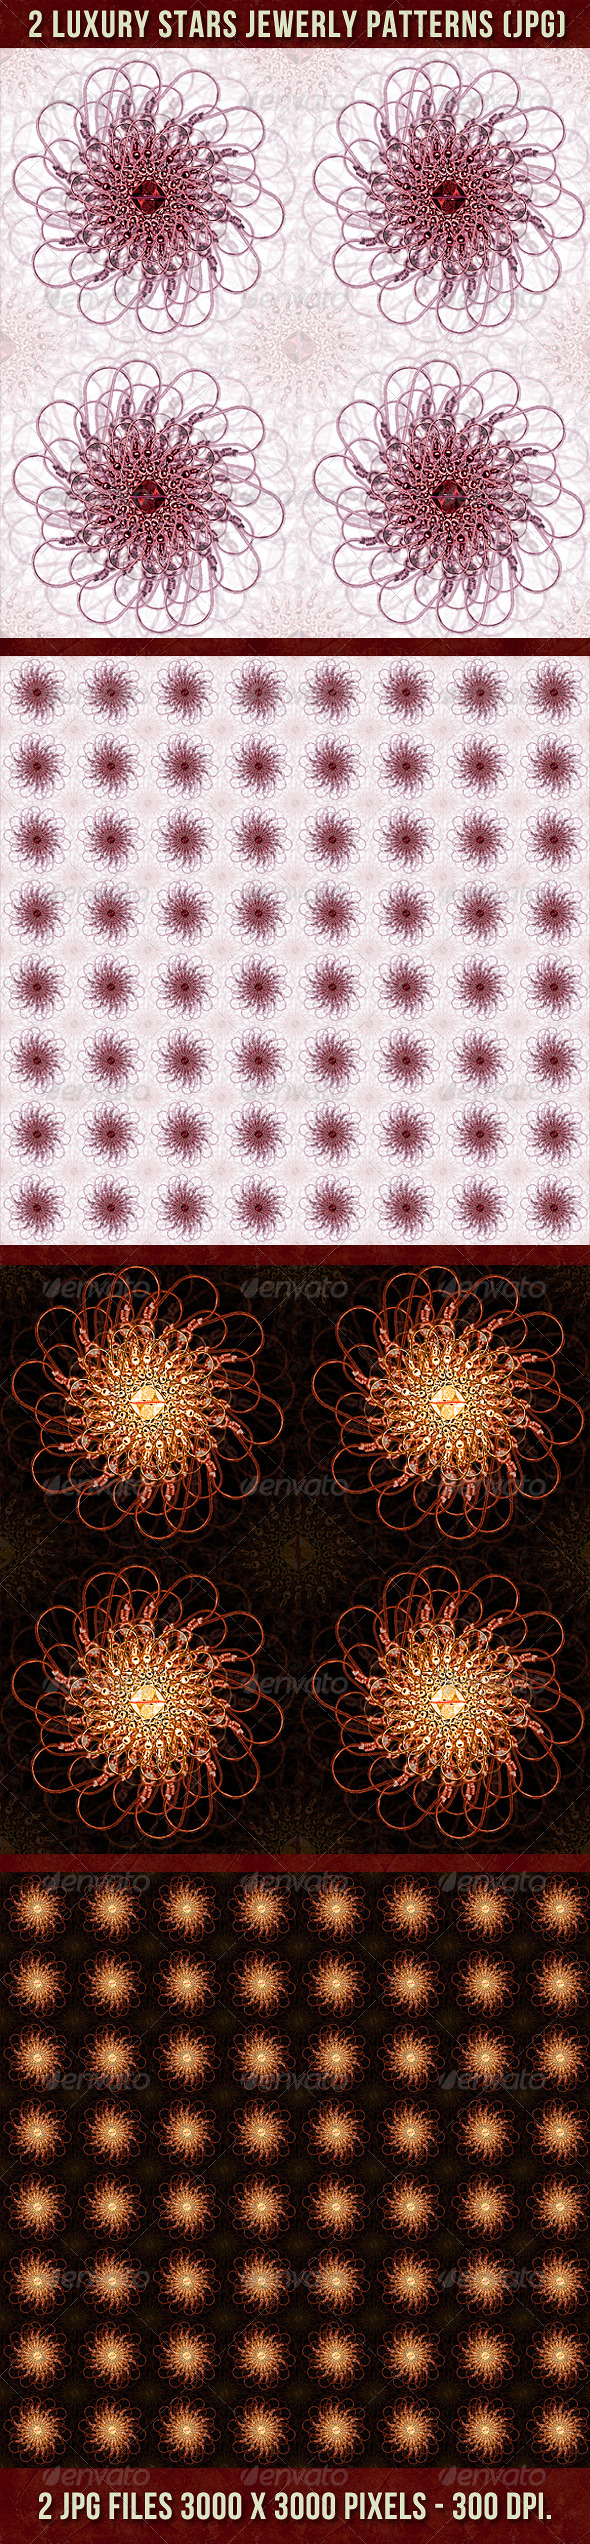 2 Luxury Stars Jewerly Patterns Backgrounds - Patterns Backgrounds